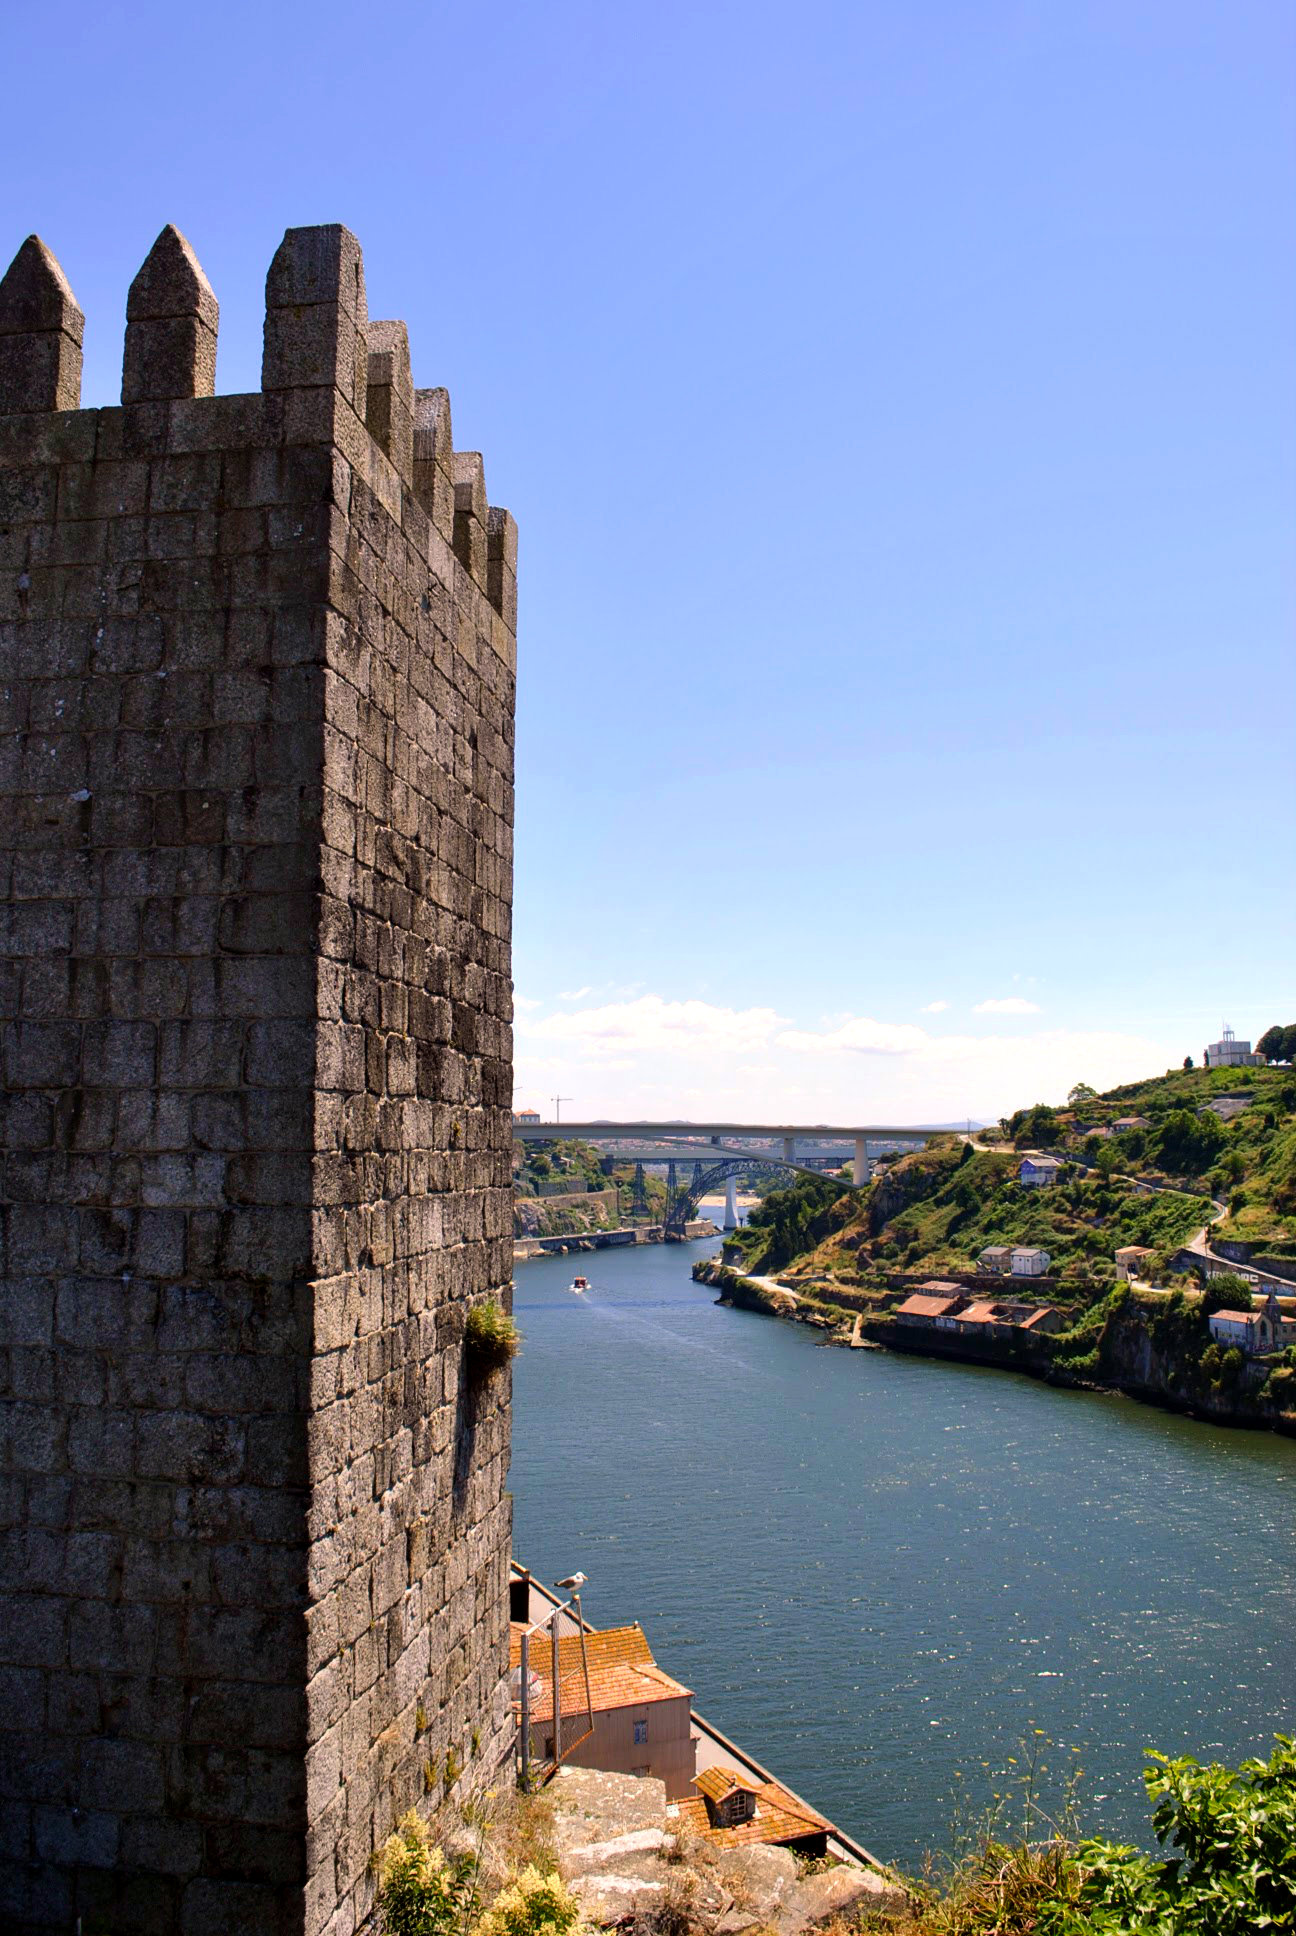 Dona Maria Bridge in Porto, built by Eiffel himself. A view from the Fernandine-Walls.